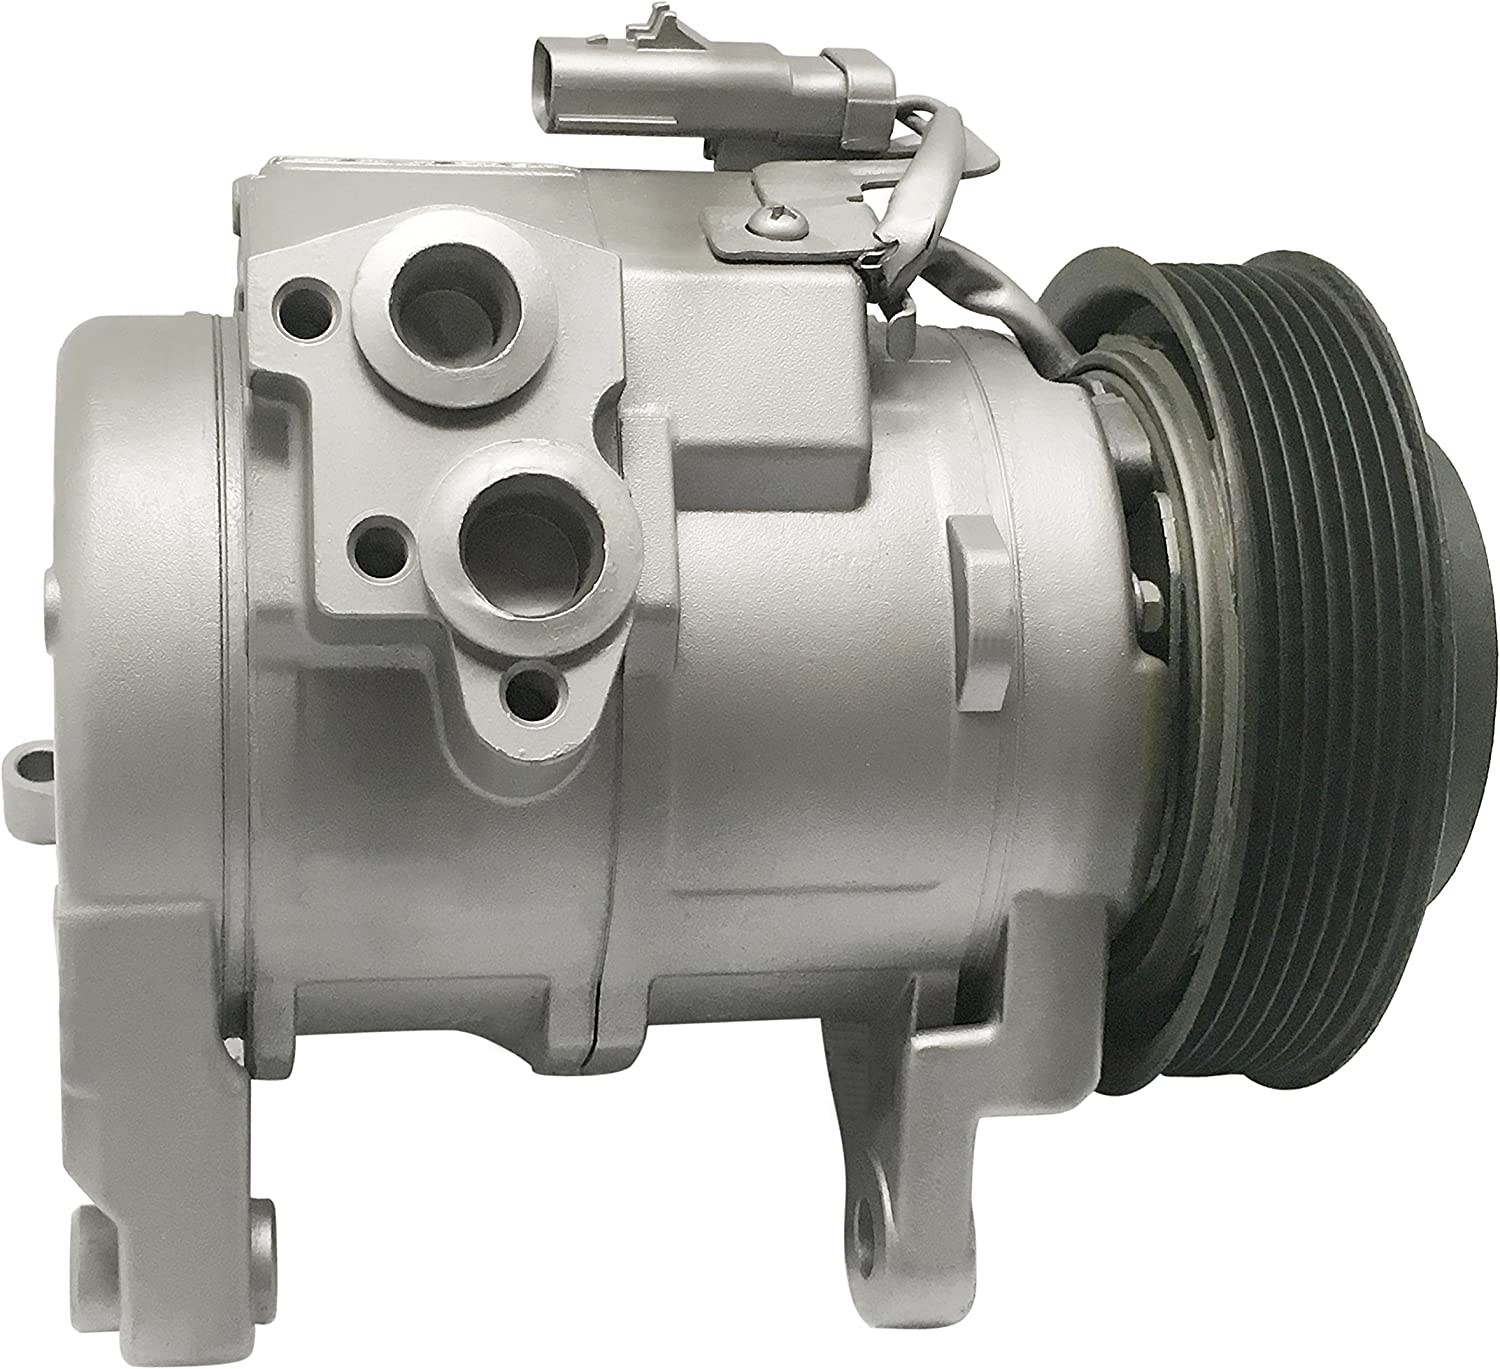 RYC Reman AC Compressor GG398 Fits Dodge Ram 5.7L 1500 2500 3500 4000